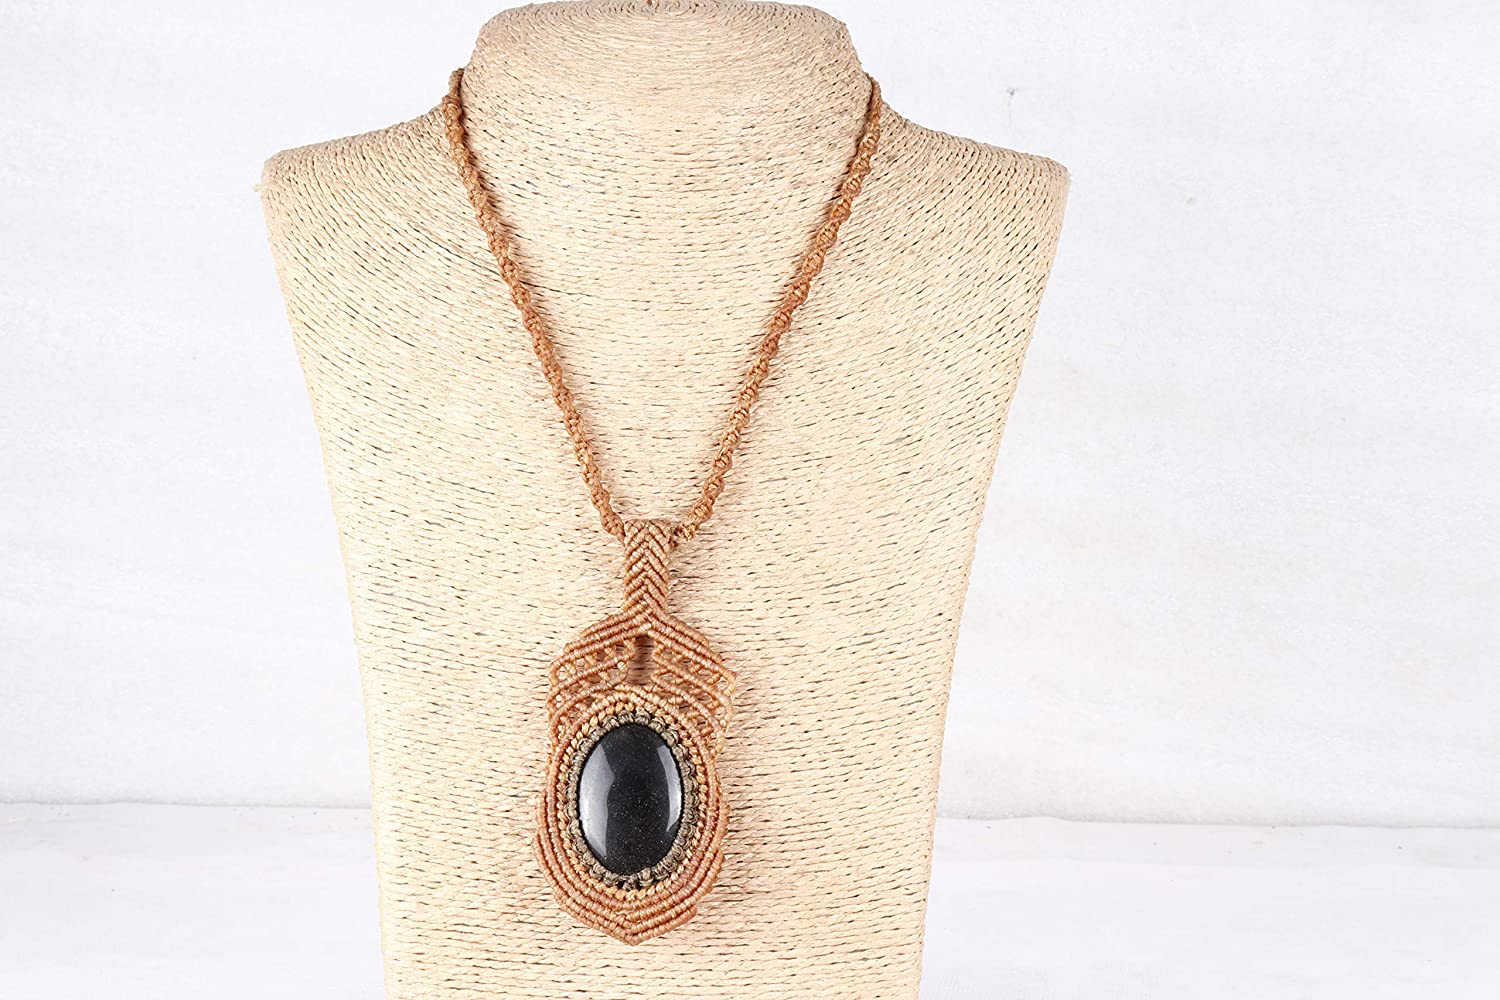 Handmade Macrame Spring new work Necklace Chick Jewelry Max 81% OFF Ston Pendant Chrysocolla